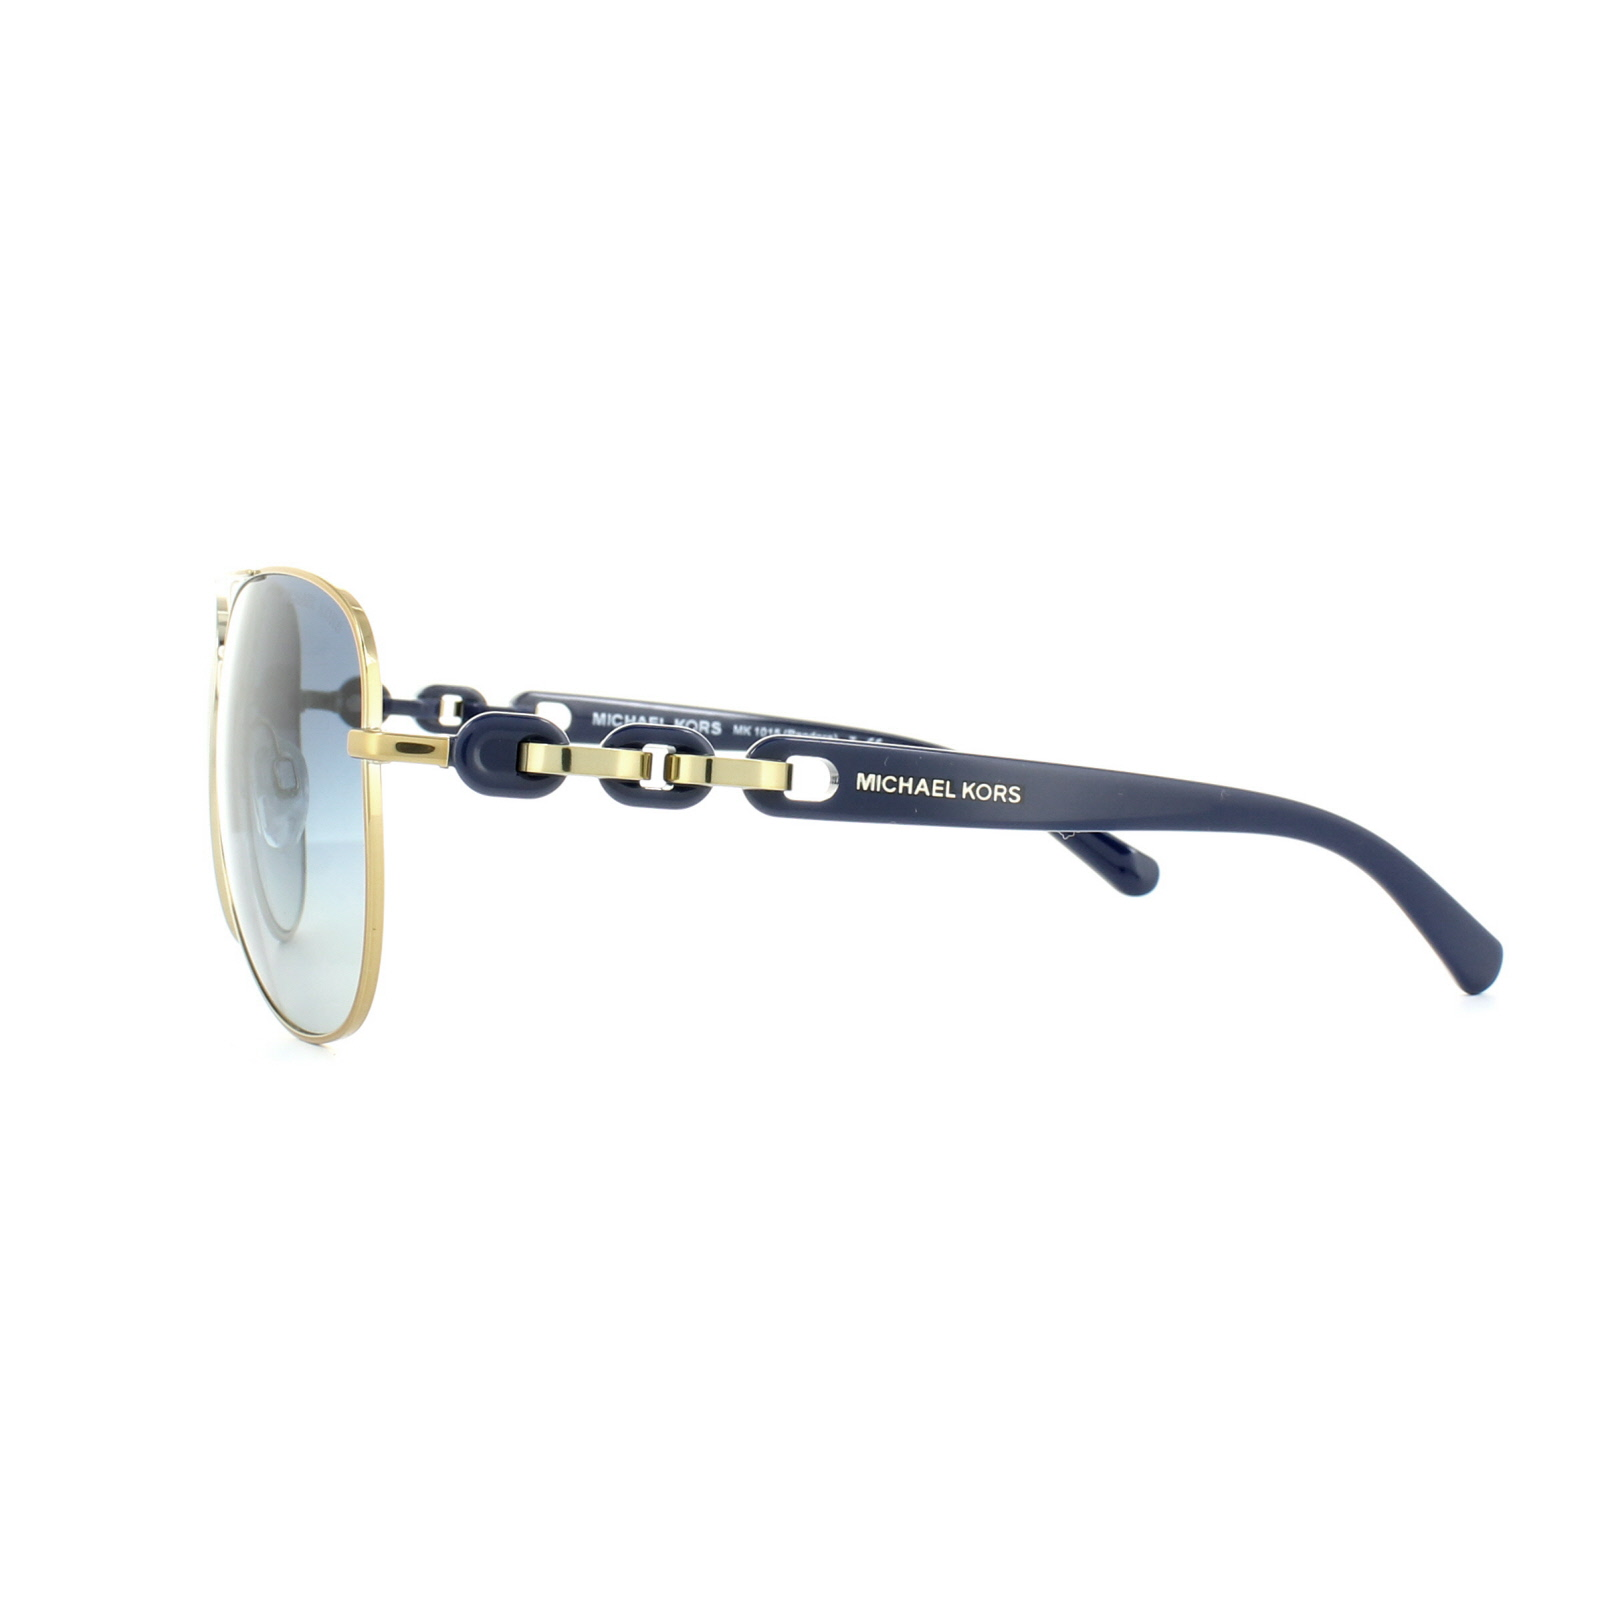 4afe6b85795 Cheap Michael Kors Pandora 1015 Sunglasses - Discounted Sunglasses